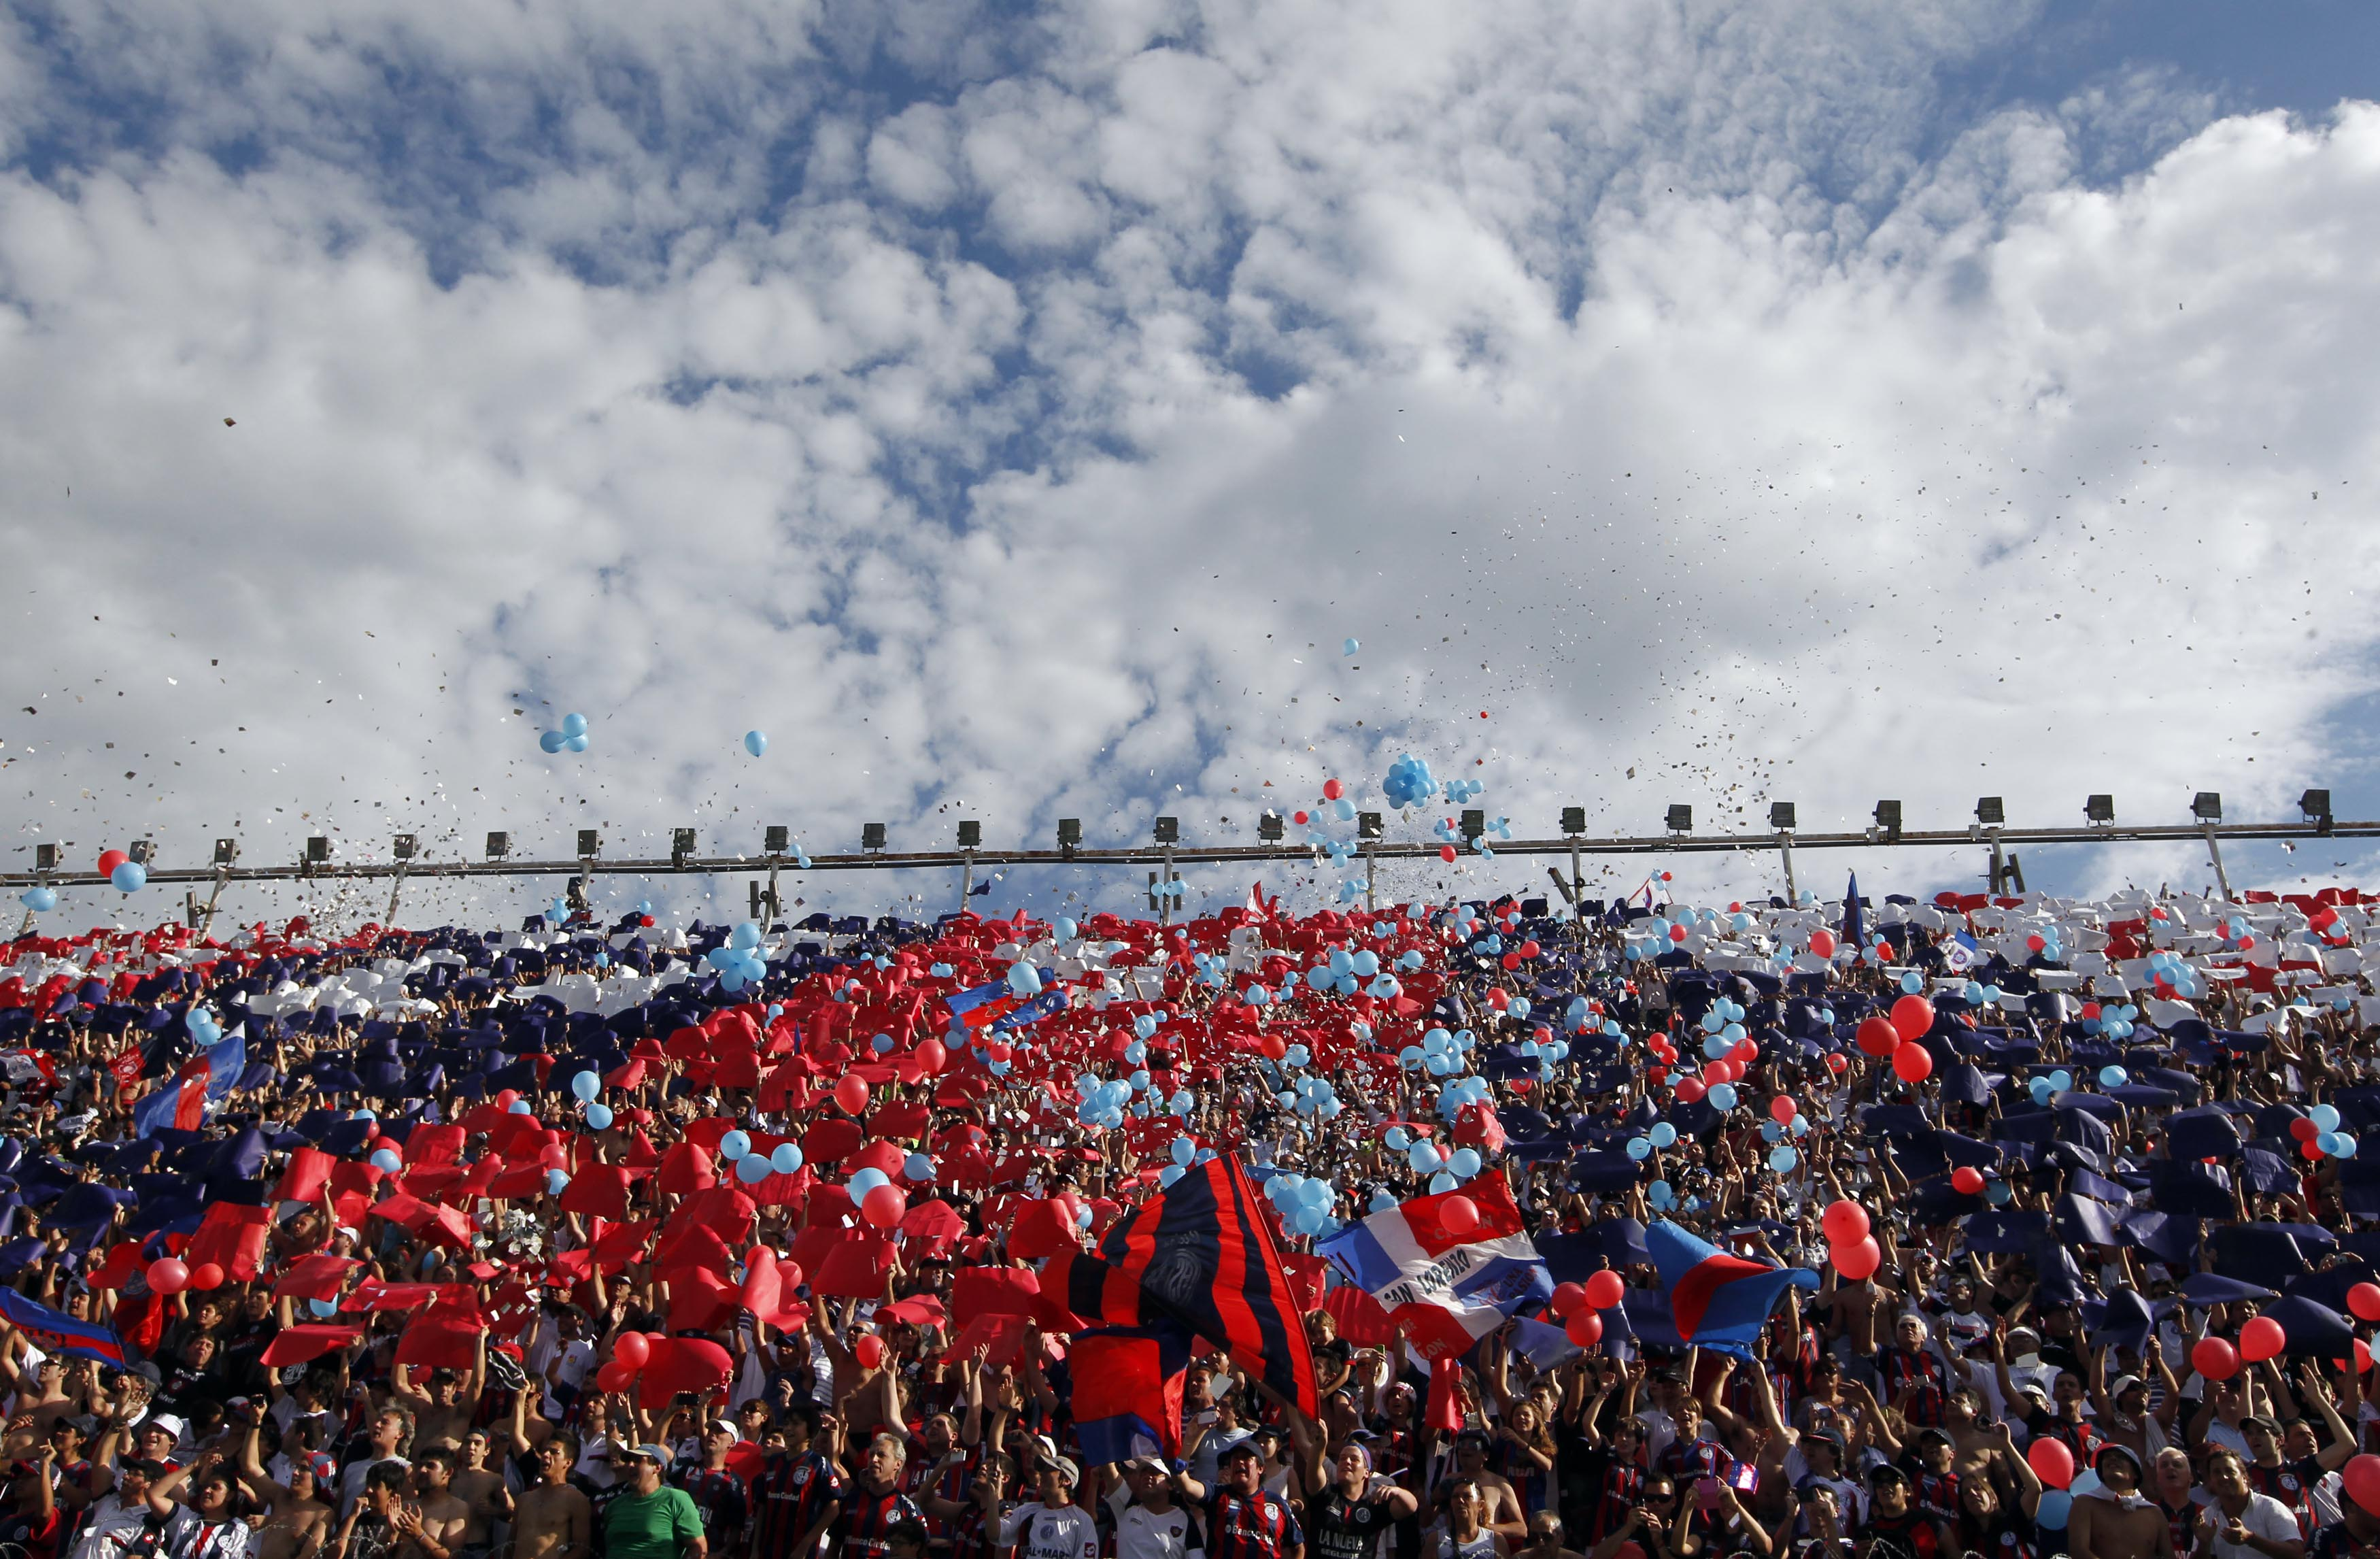 Fans of San Lorenzo cheer before the First Division Argentine championship soccer match against Estudiantes in Buenos Aires December 1, 2013. REUTERS/Enrique Marcarian (ARGENTINA - Tags: SPORT SOCCER) - RTX160FS